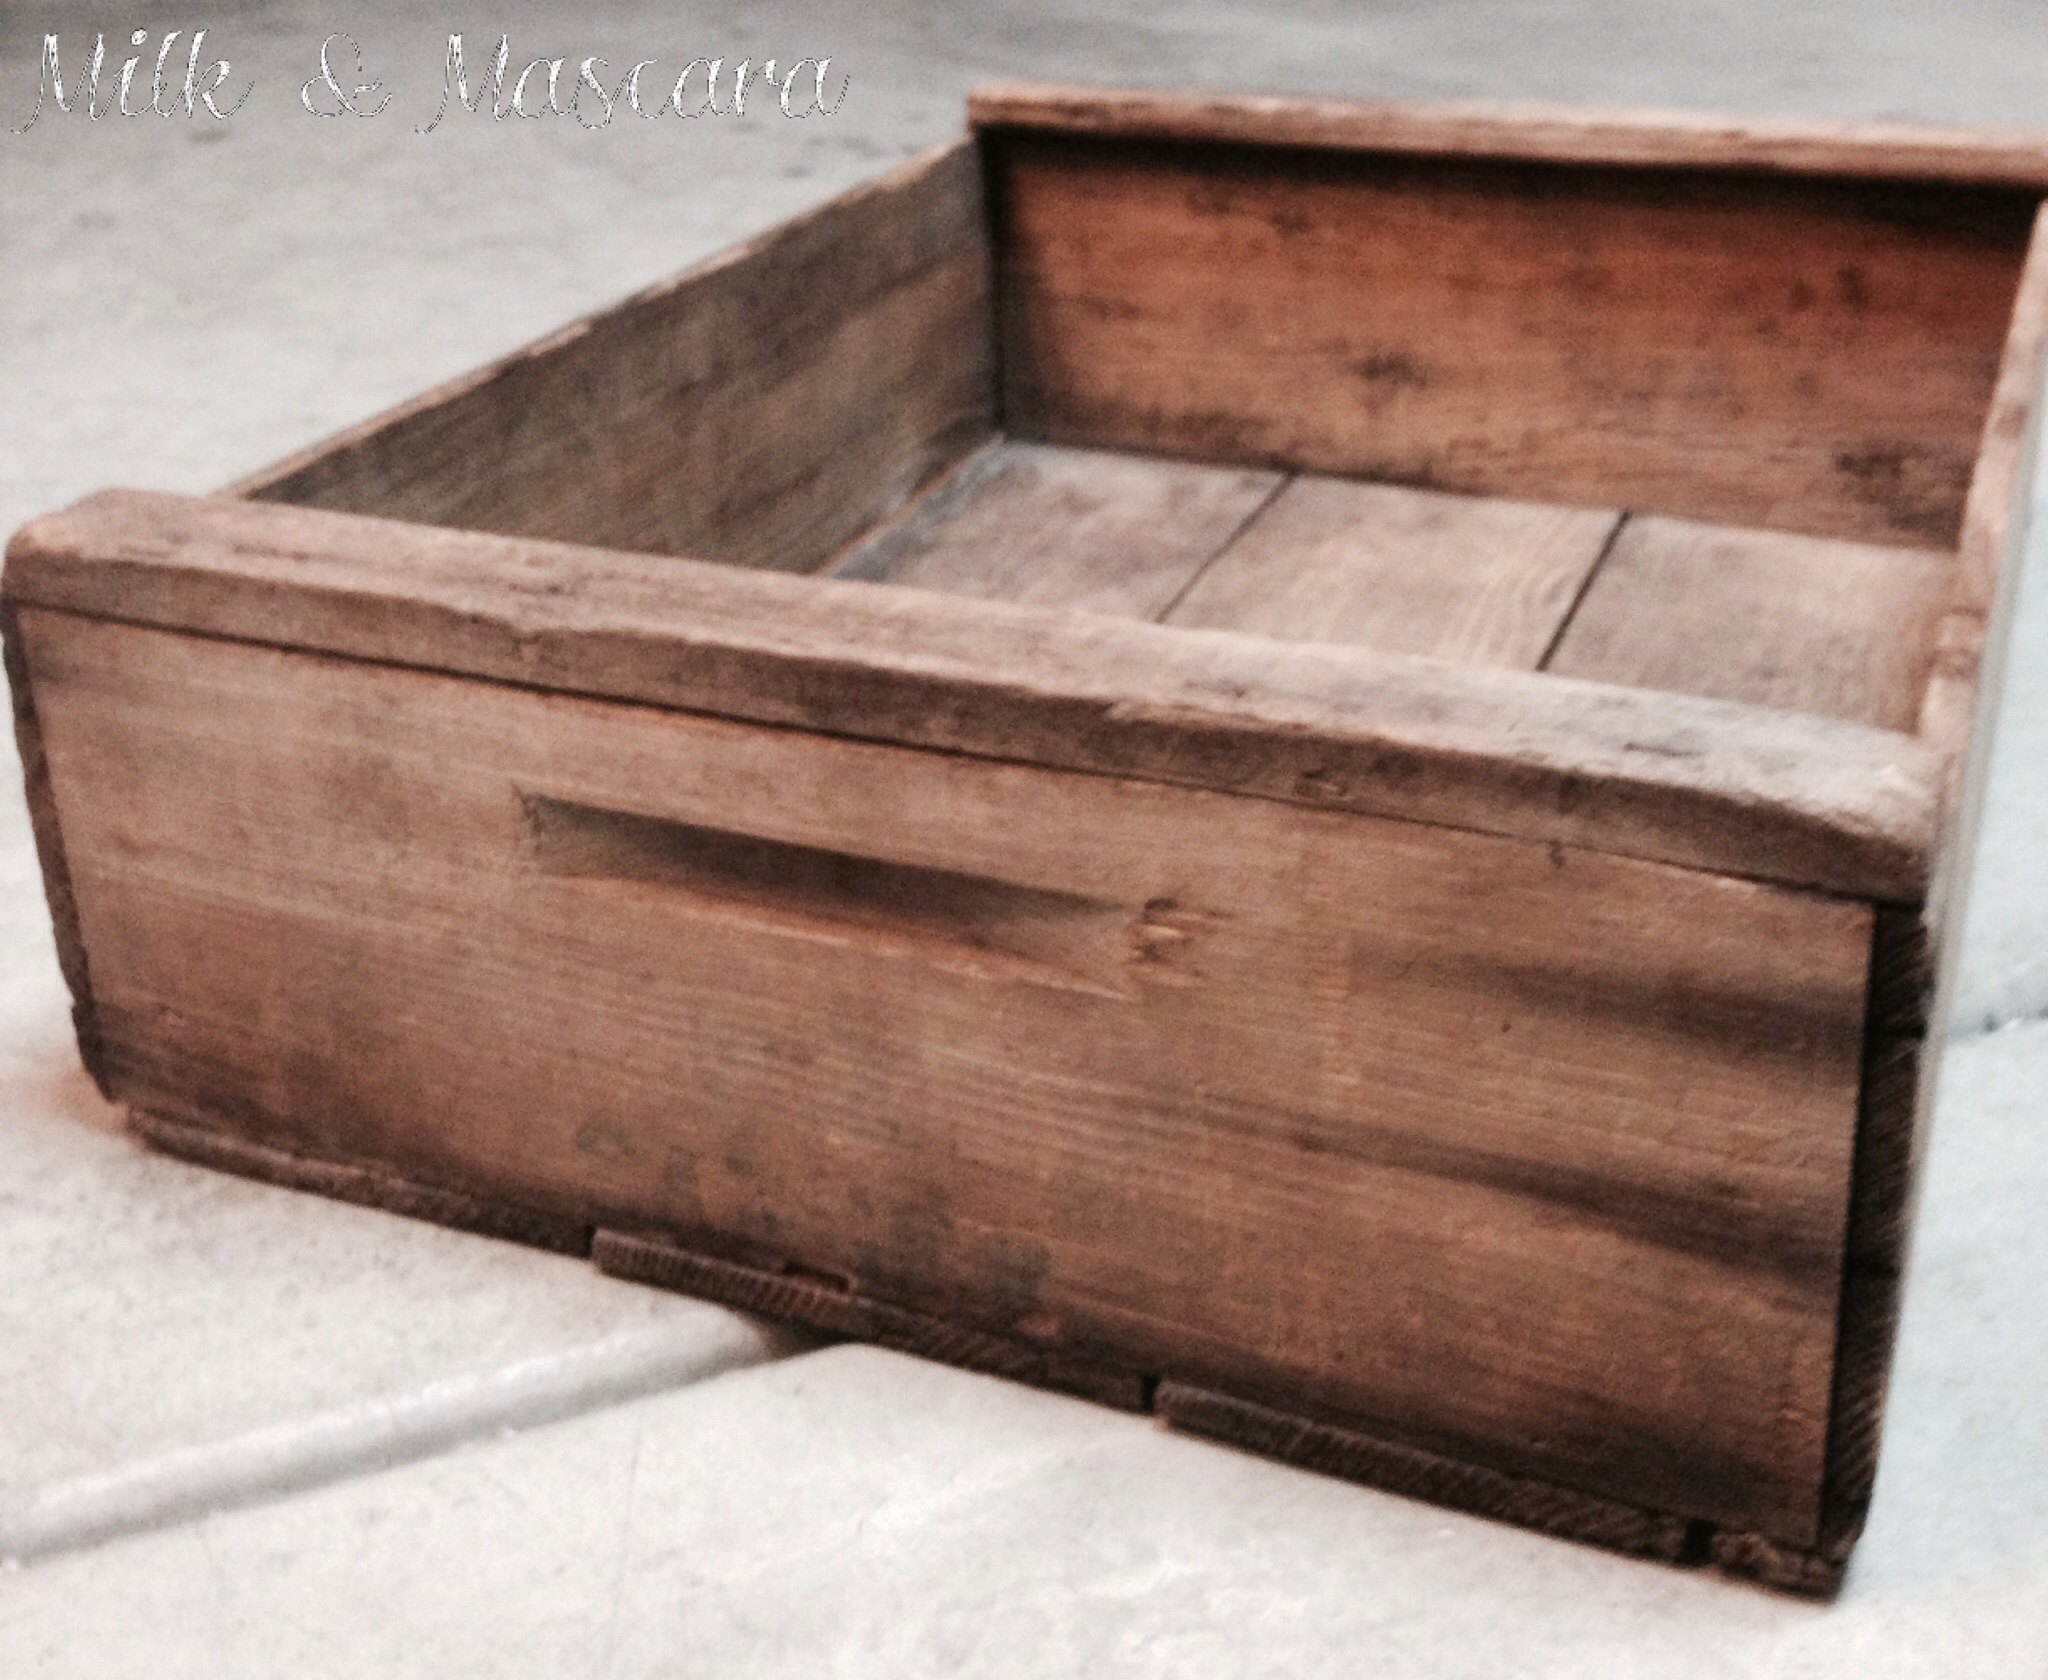 Diy rustic wooden crate toy box for Uses for old wooden crates